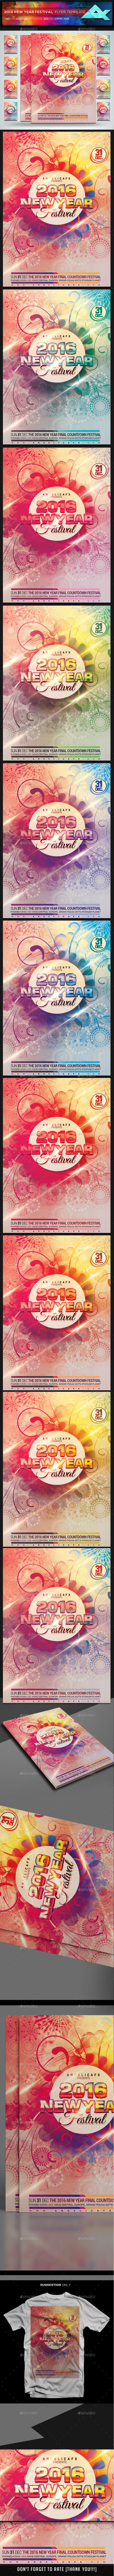 2016 New Year Festival Flyer Template - Events Flyers